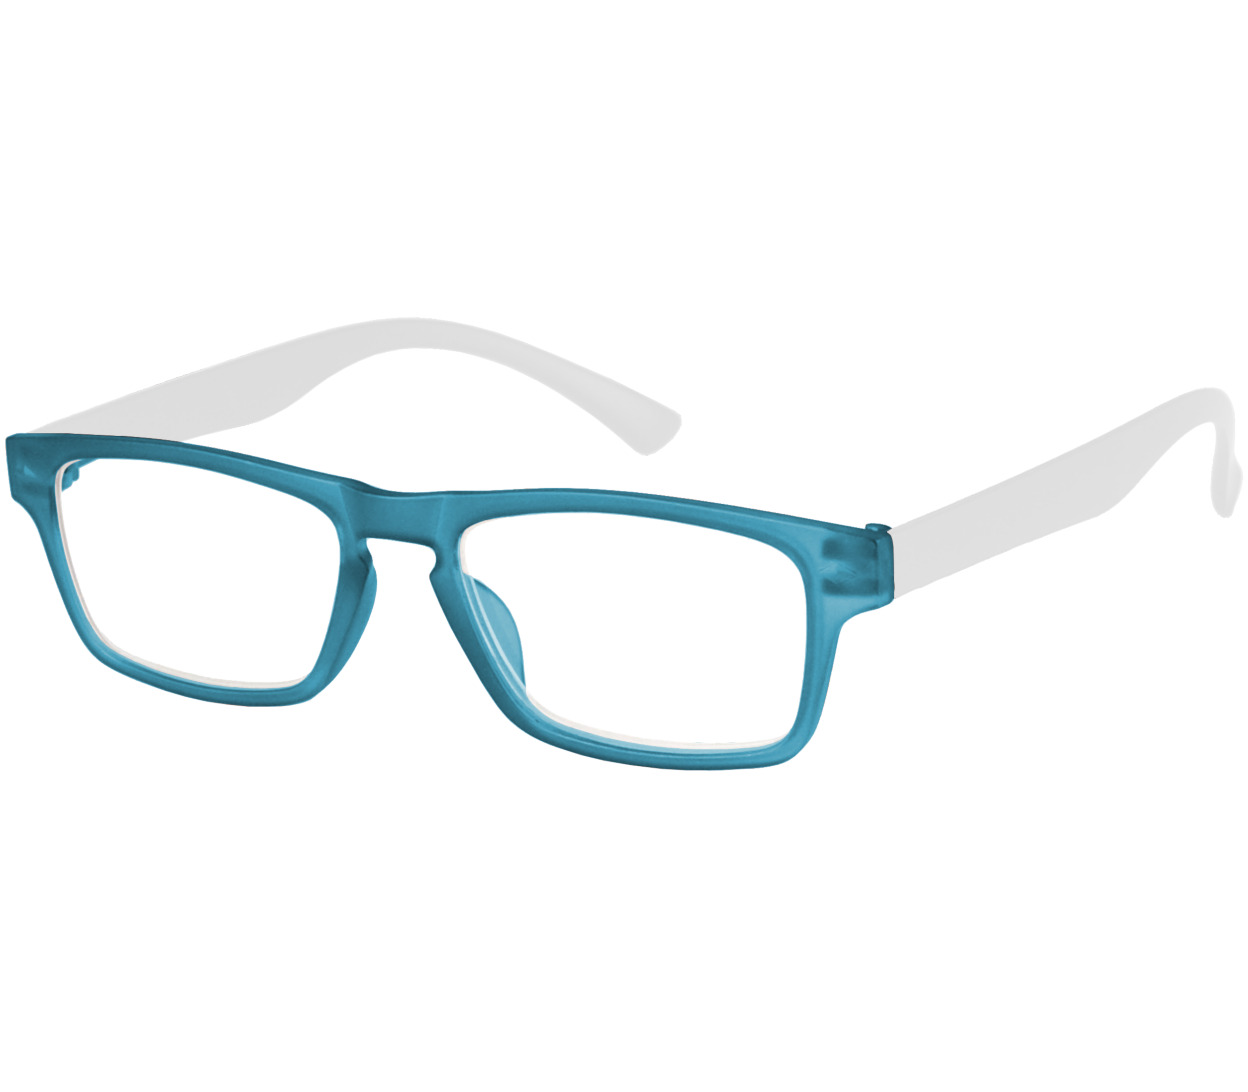 Main Image (Angle) - Sugar (Blue) Classic Reading Glasses